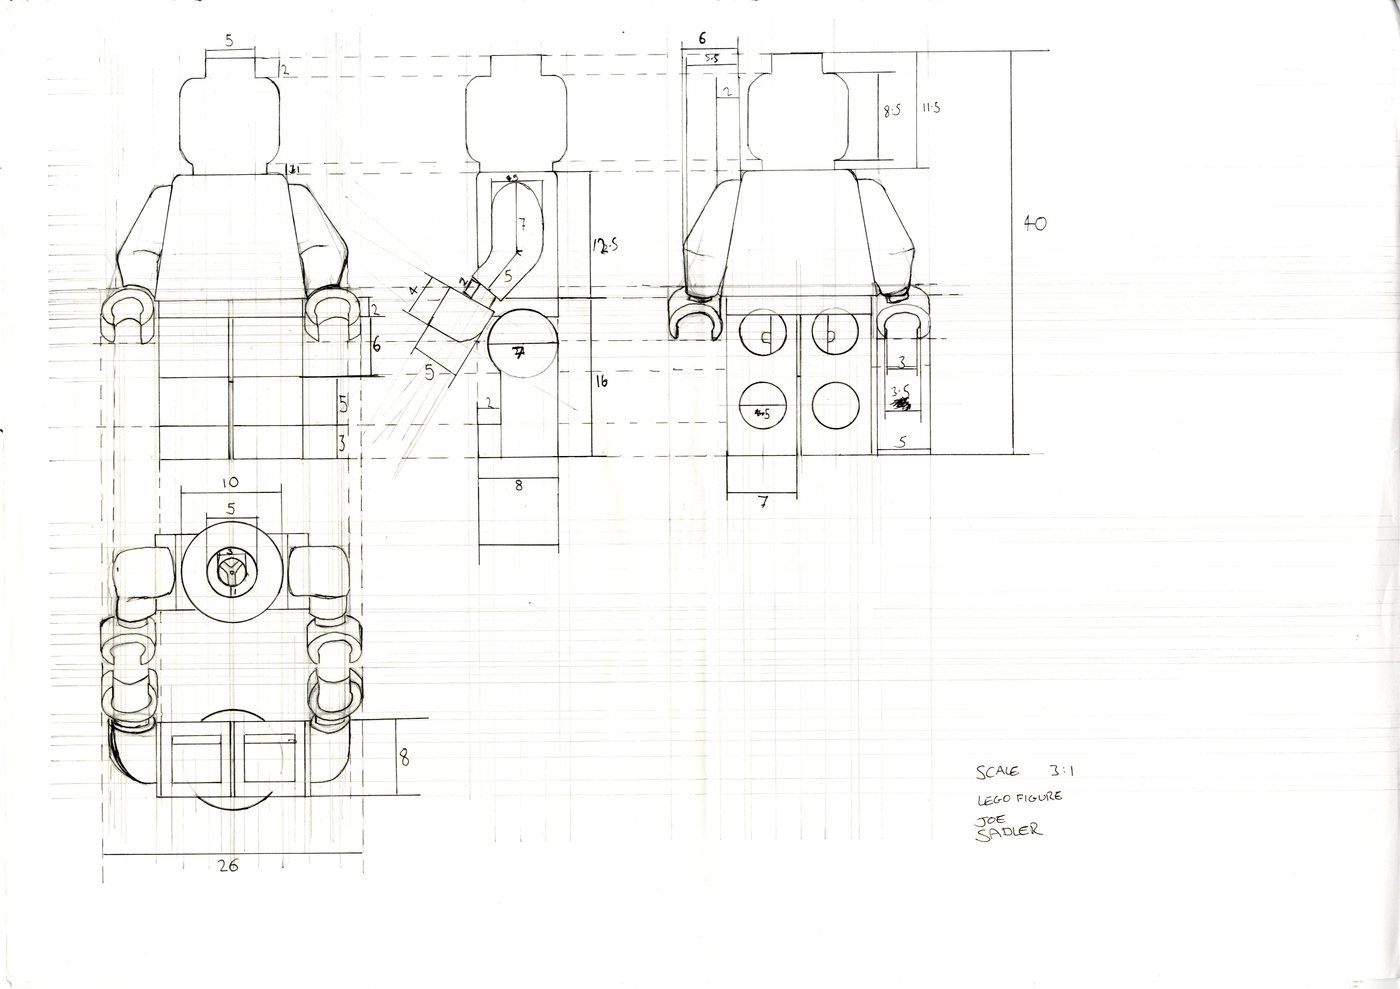 Cad And Technical Drawing By Joseph Sadler At Coroflot